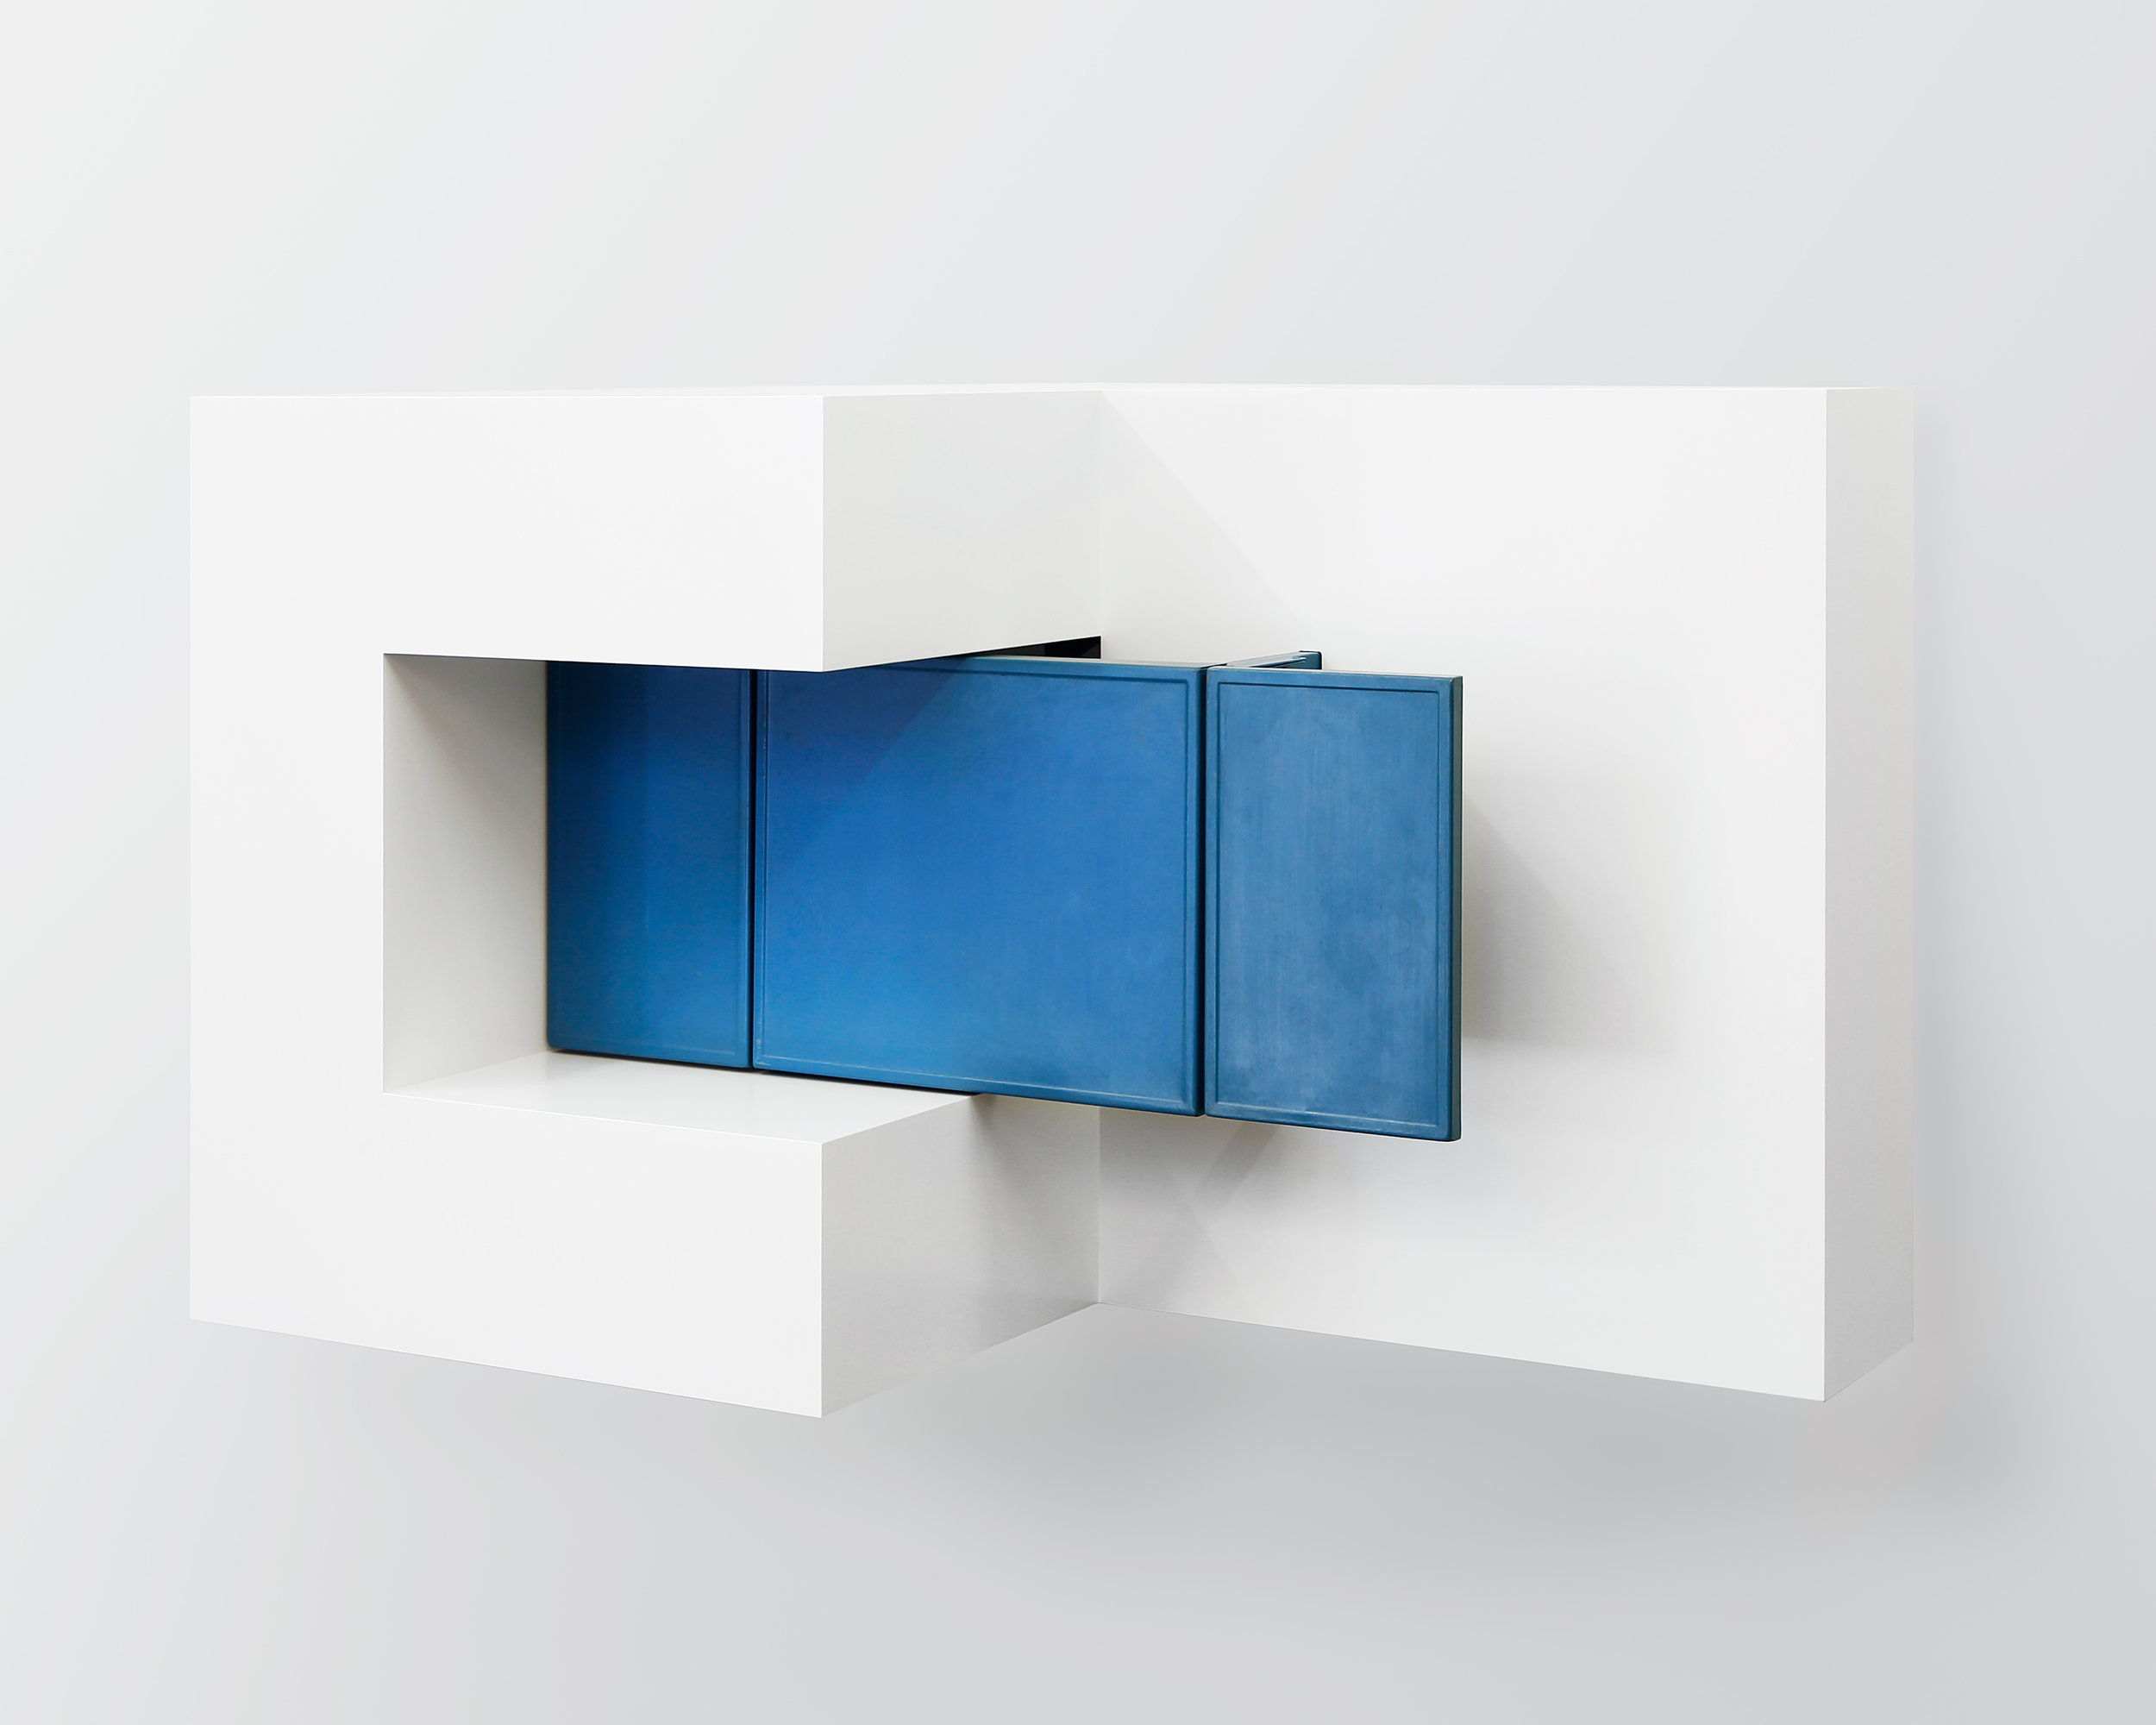 Untitled (with cabinet), 2016